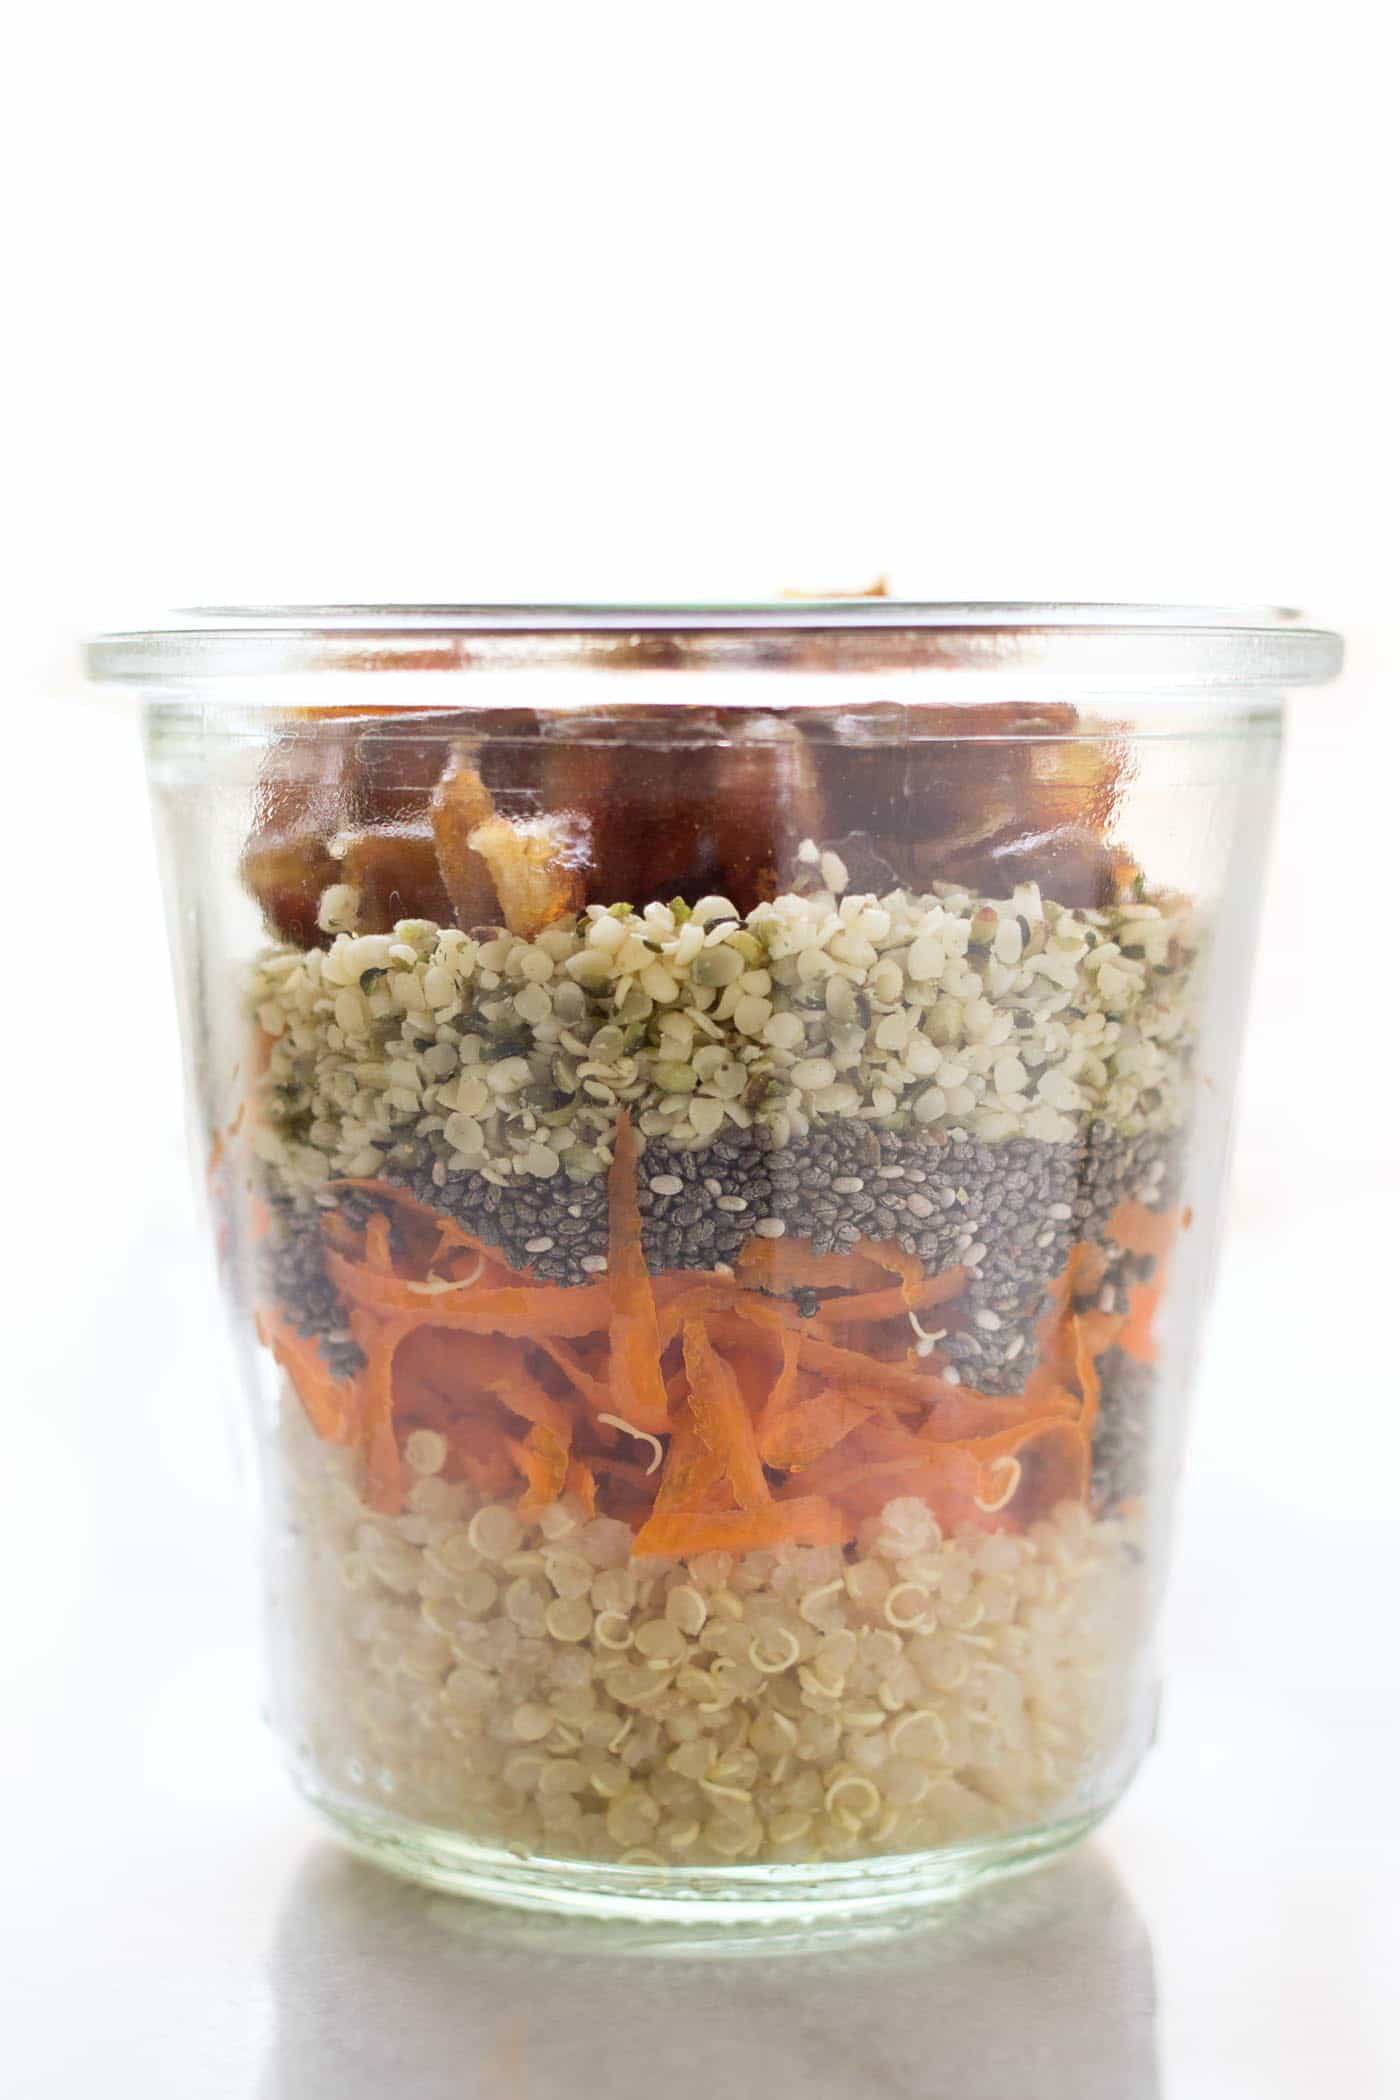 Classic carrot cake flavors transformed into a healthy breakfast treat >> Carrot Cake Chia Pudding!